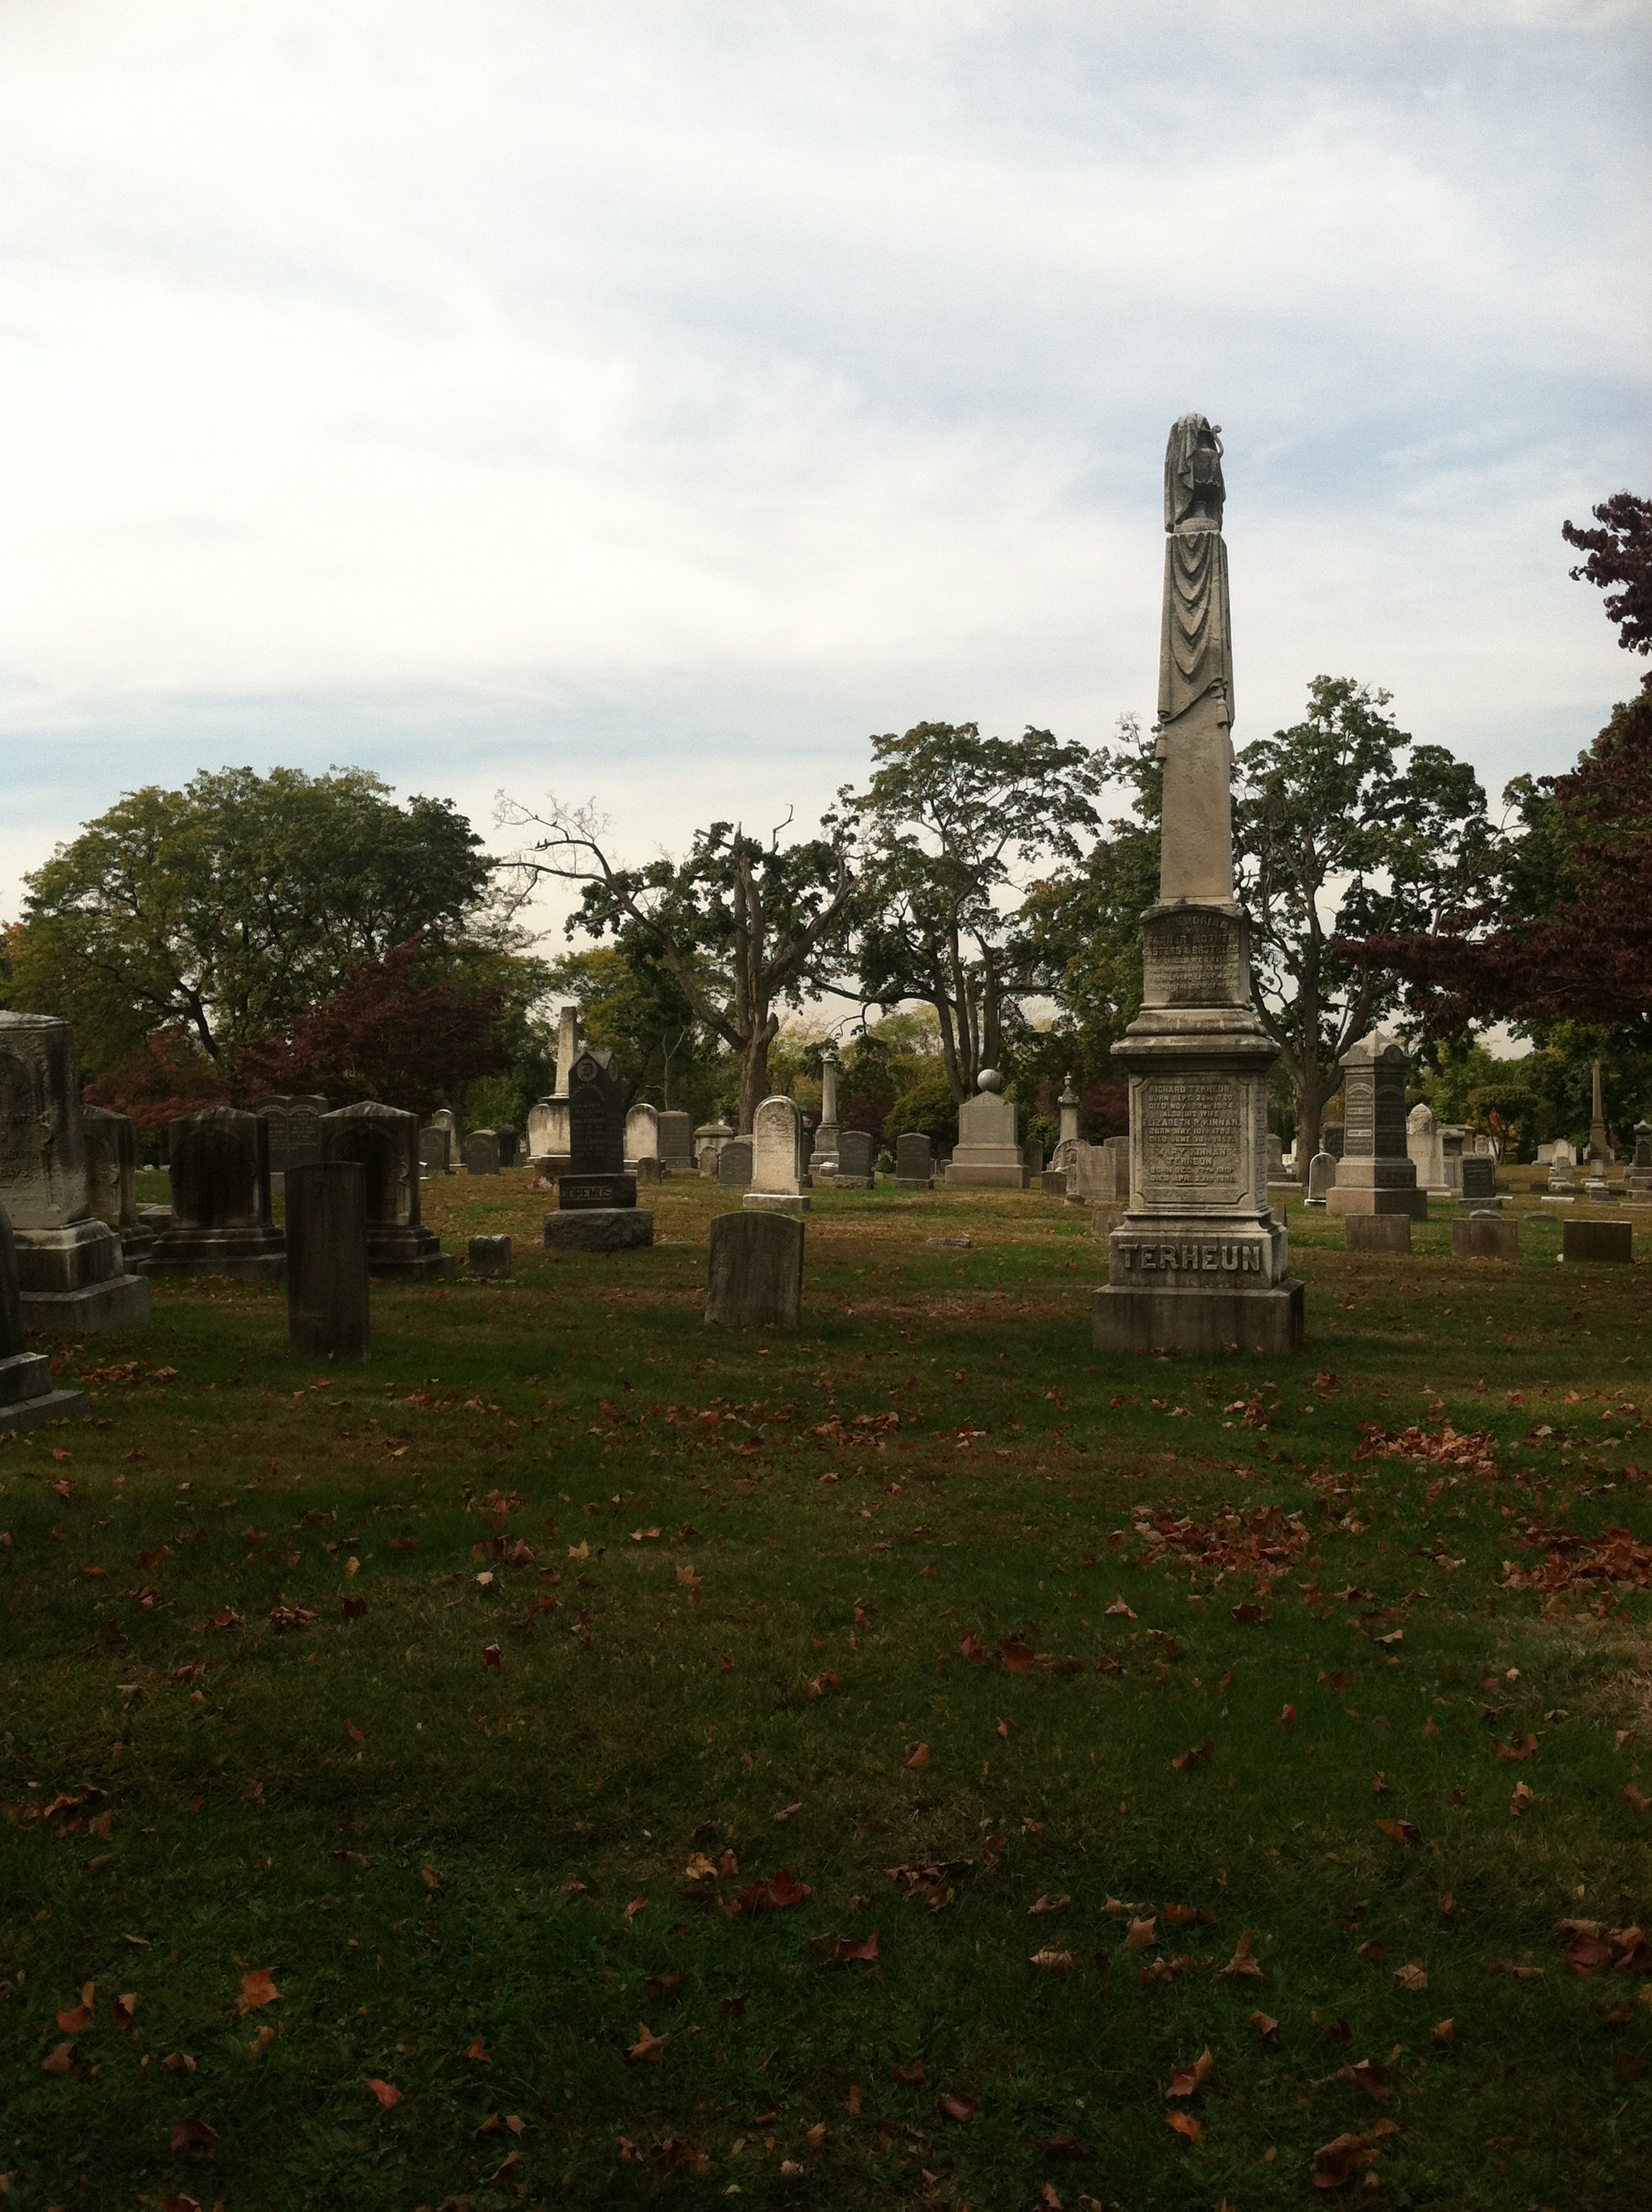 And then we went to a Jersey Cemetery Oct 19, 2013 140